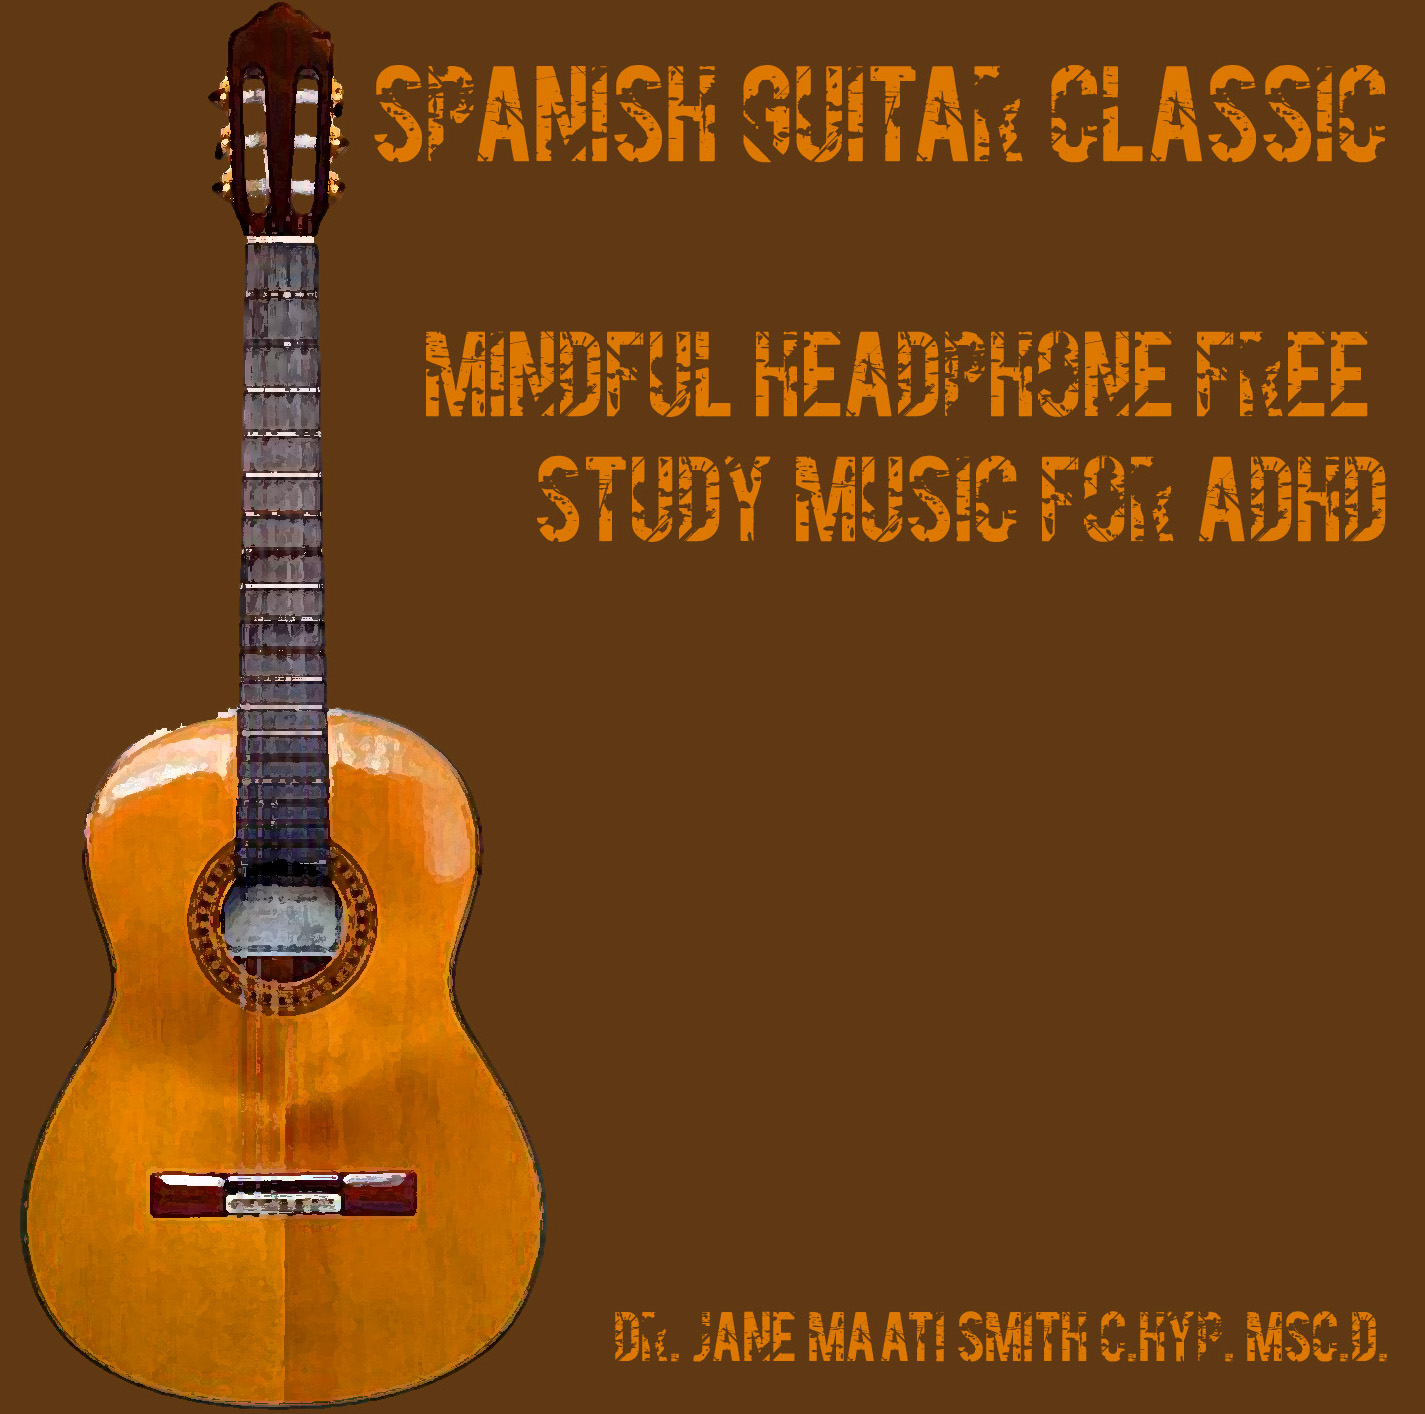 spanish guitar isochronic adhd study music